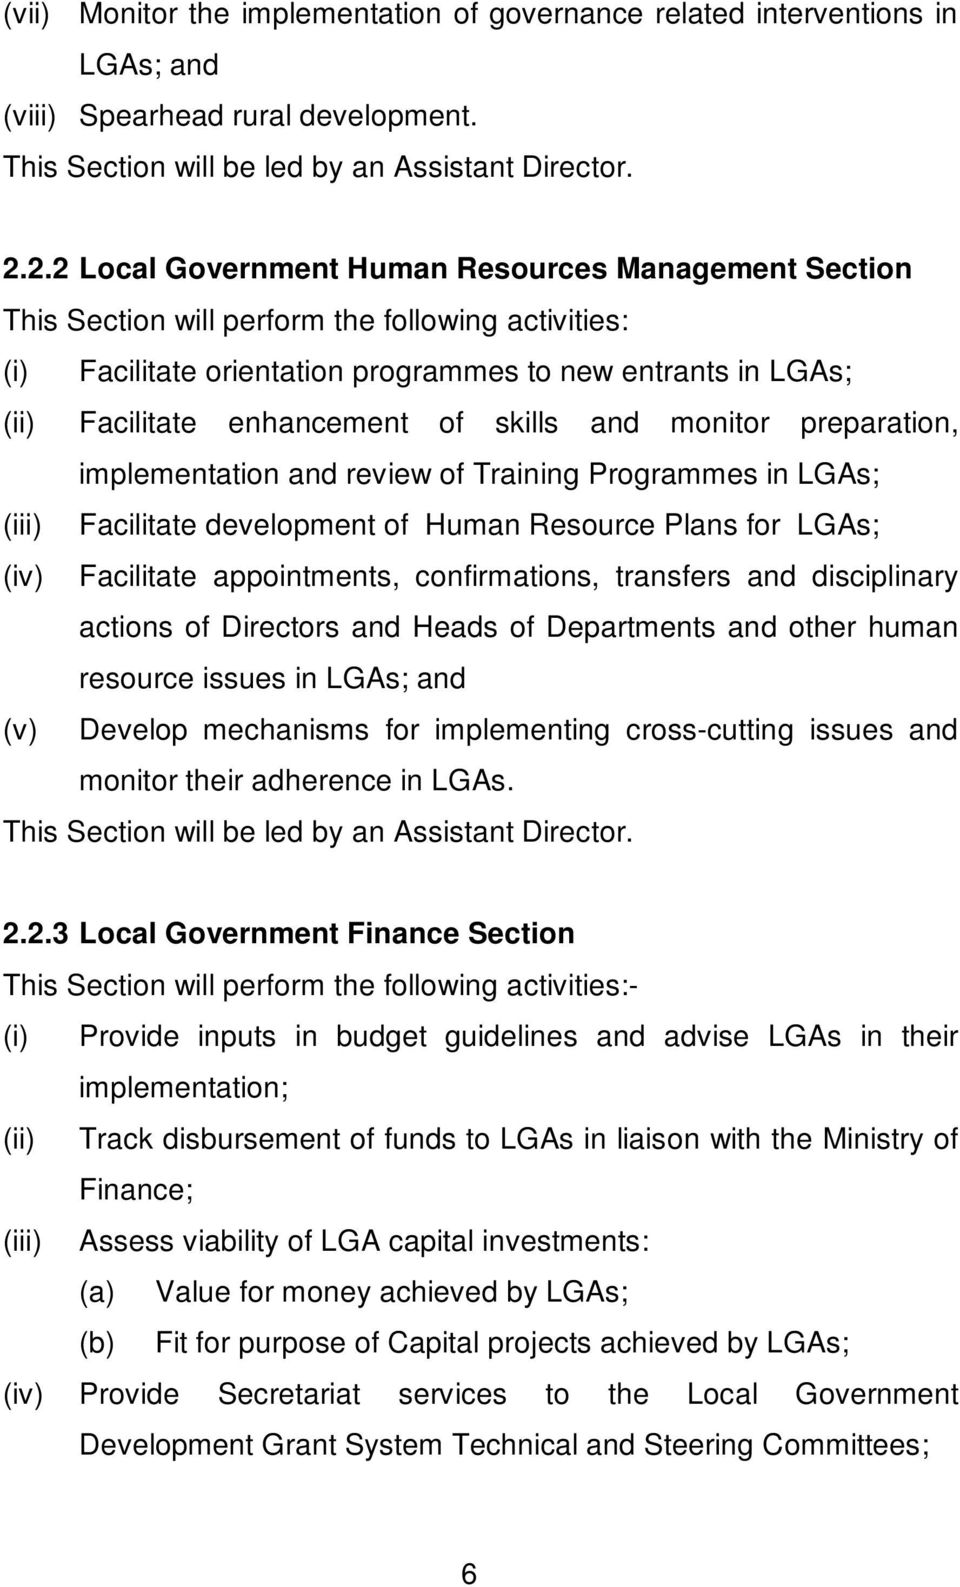 of skills and monitor preparation, implementation and review of Training Programmes in LGAs; (iii) Facilitate development of Human Resource Plans for LGAs; (iv) Facilitate appointments,